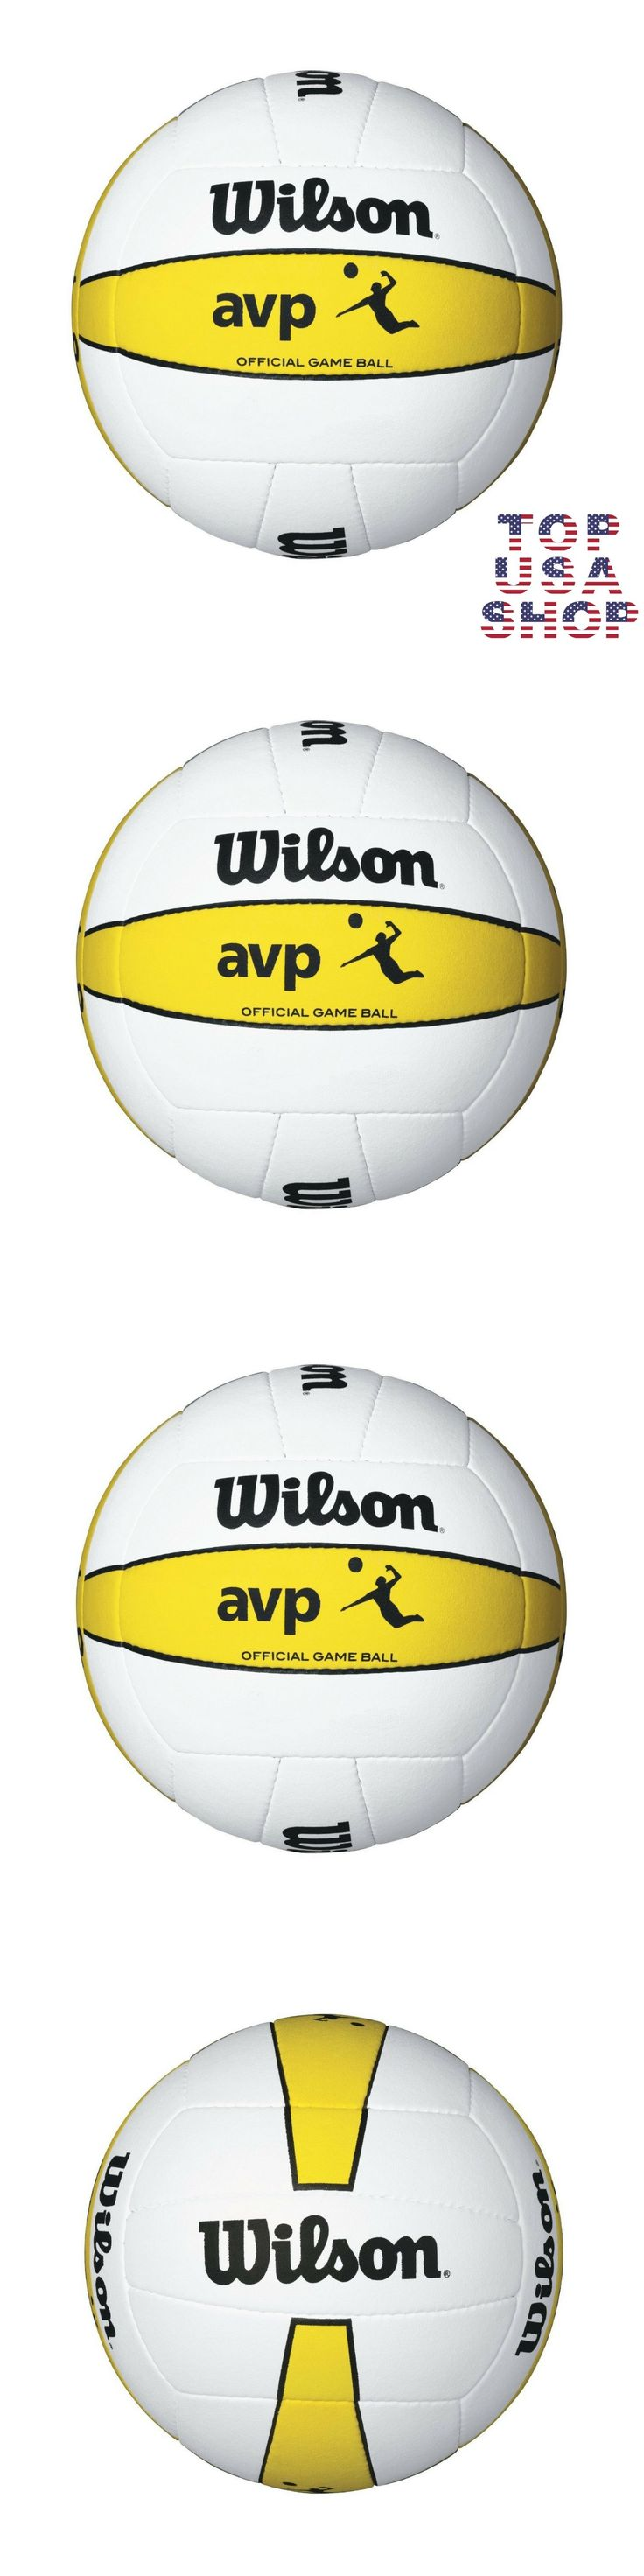 Volleyballs 159132: Volleyball Beach Ball Wilson Game Official Avp Outdoor Leather Microfiber Sports -> BUY IT NOW ONLY: $55.99 on eBay!